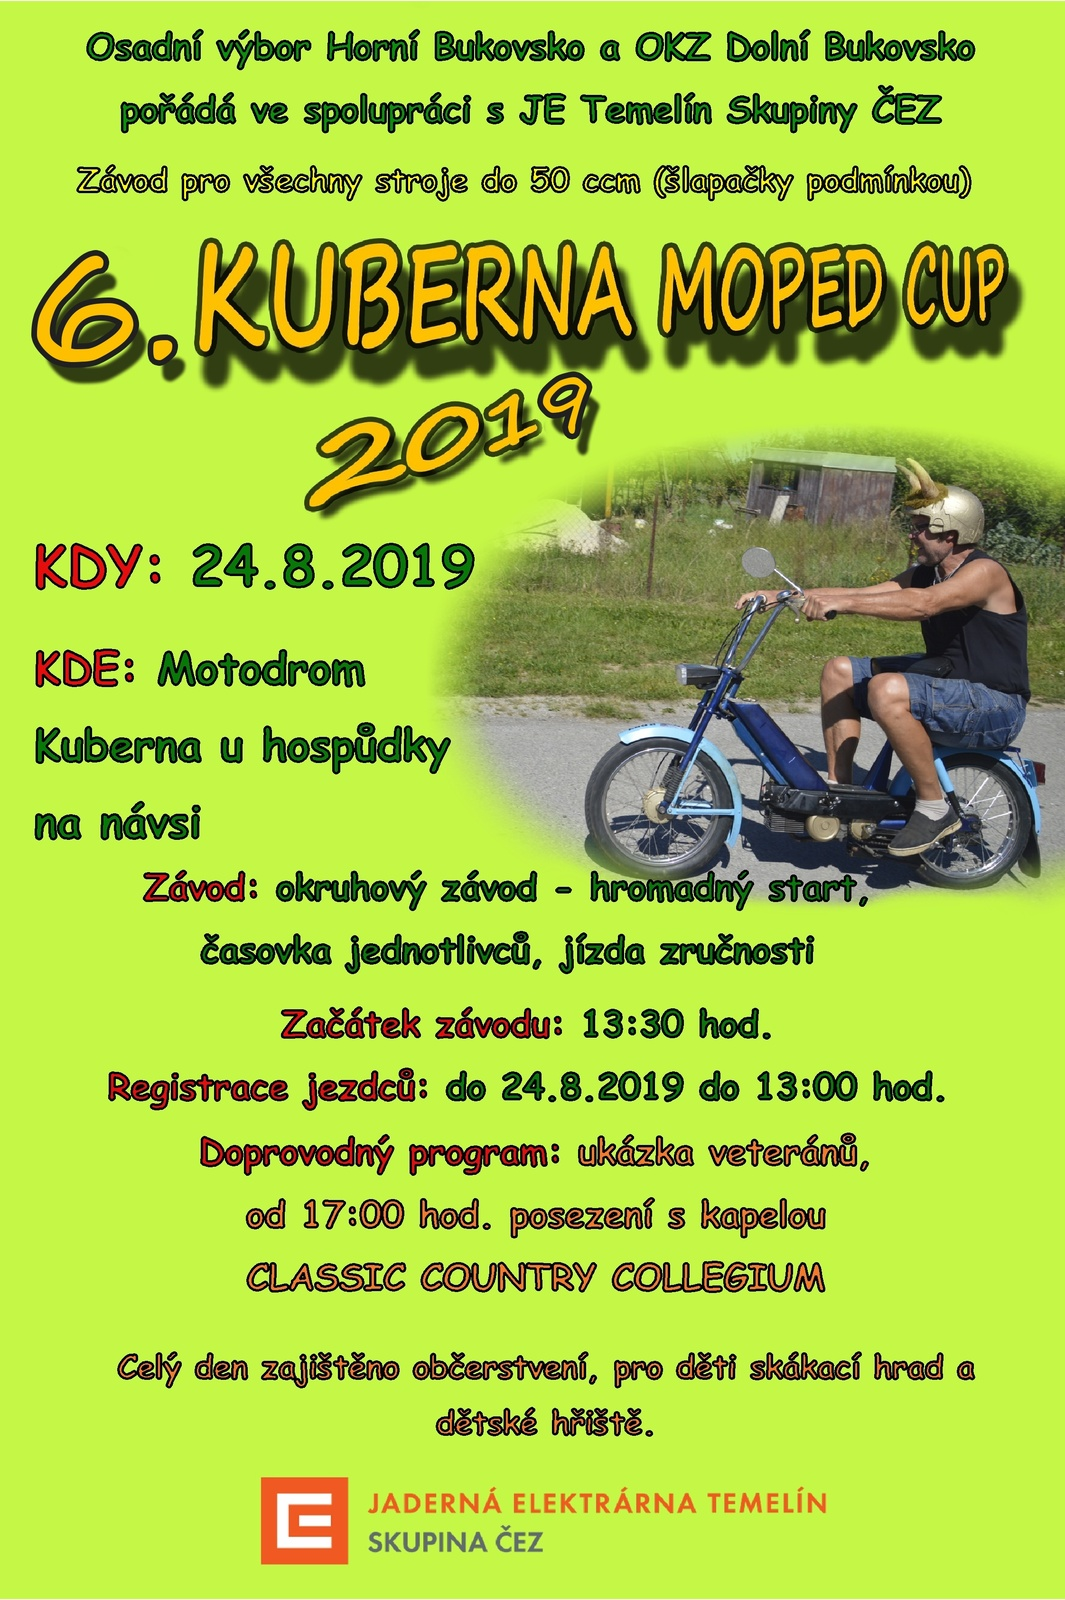 Moped cup 2019